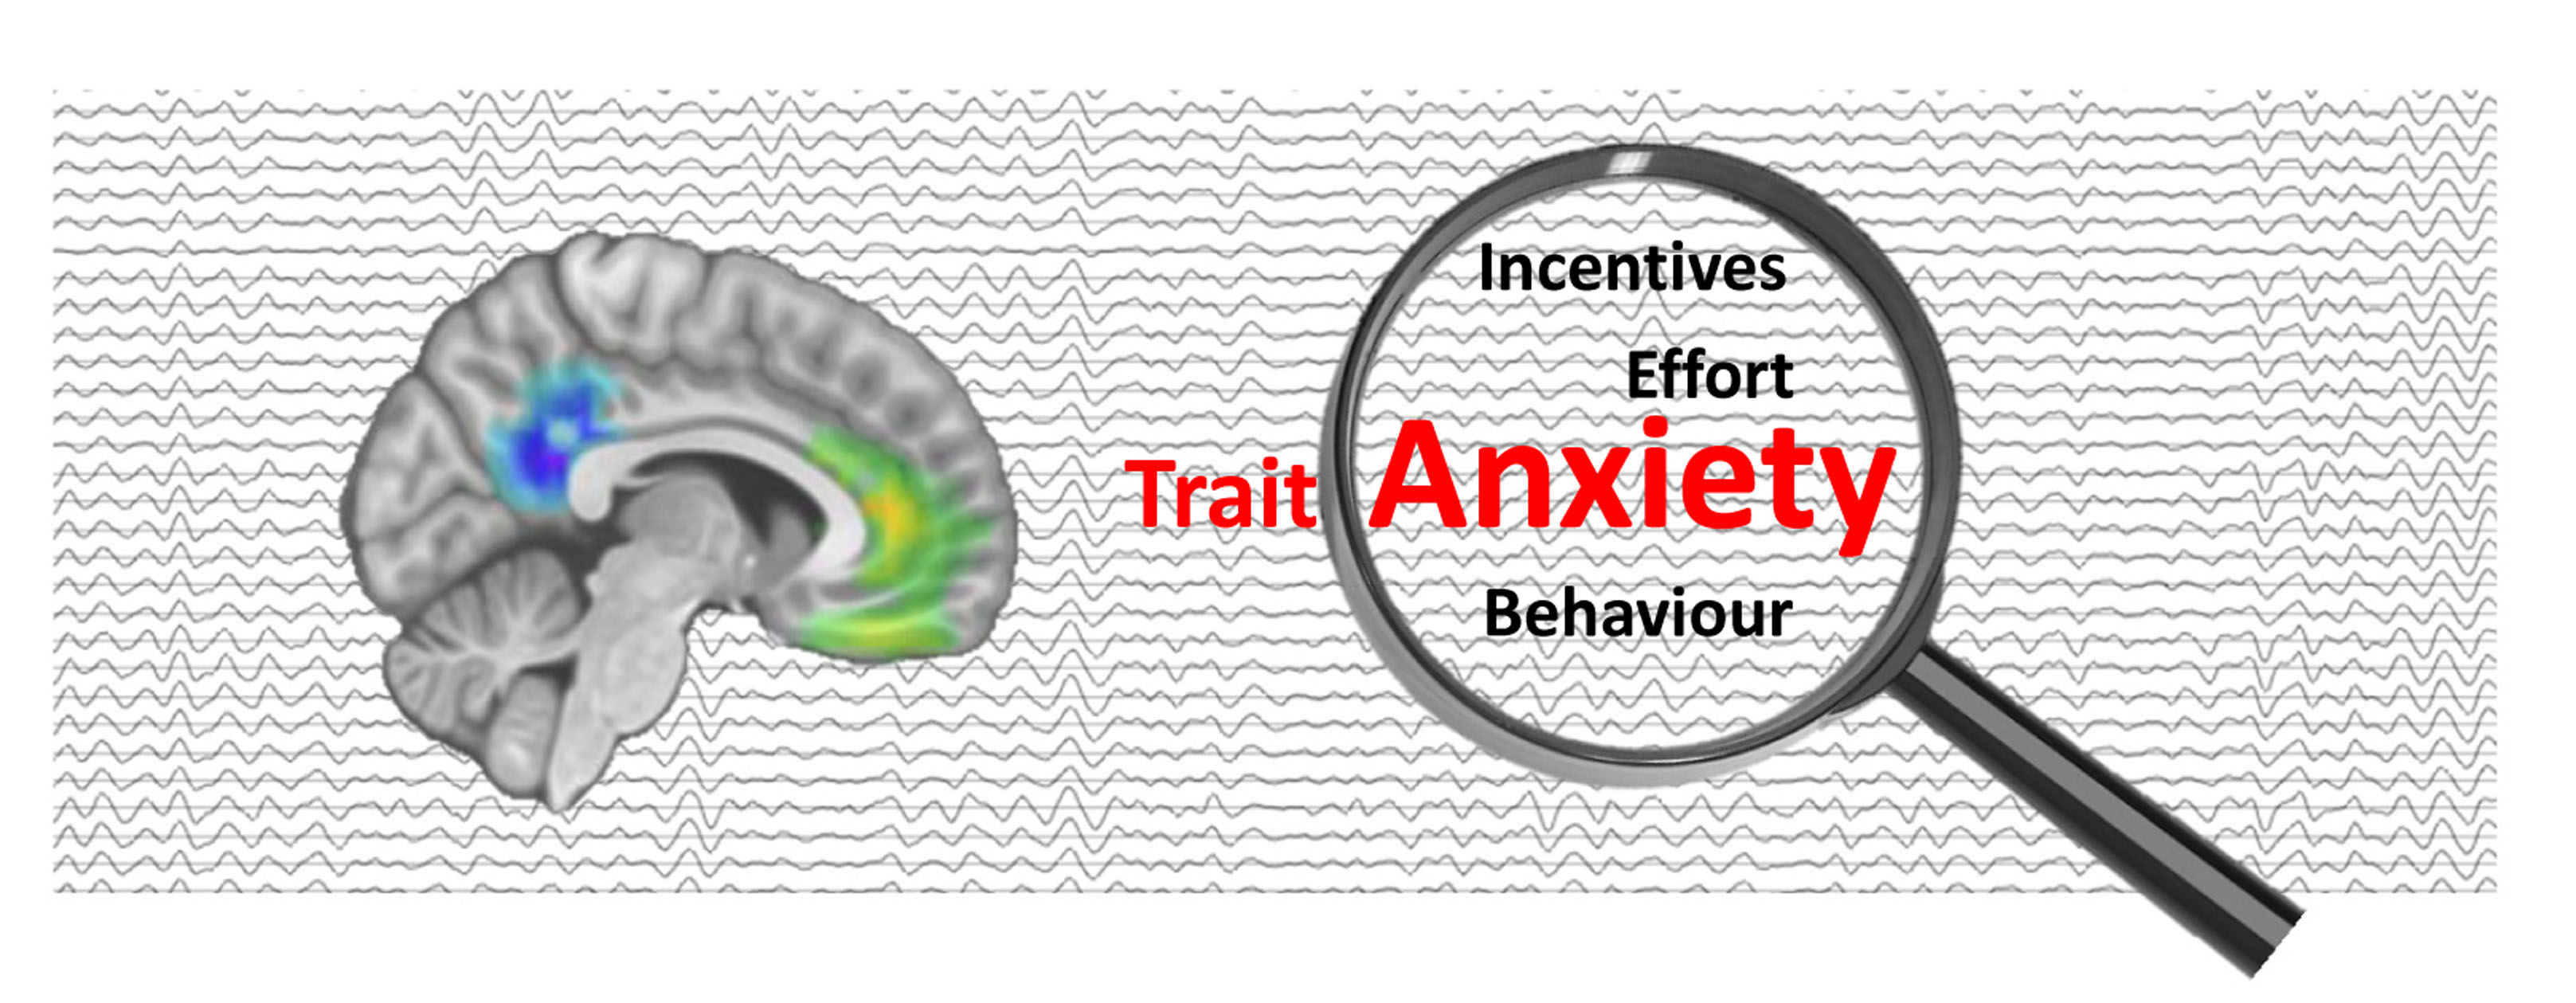 Identification of a behavioral and neural signature of trait anxiety related to differences in effortful motivated behavior